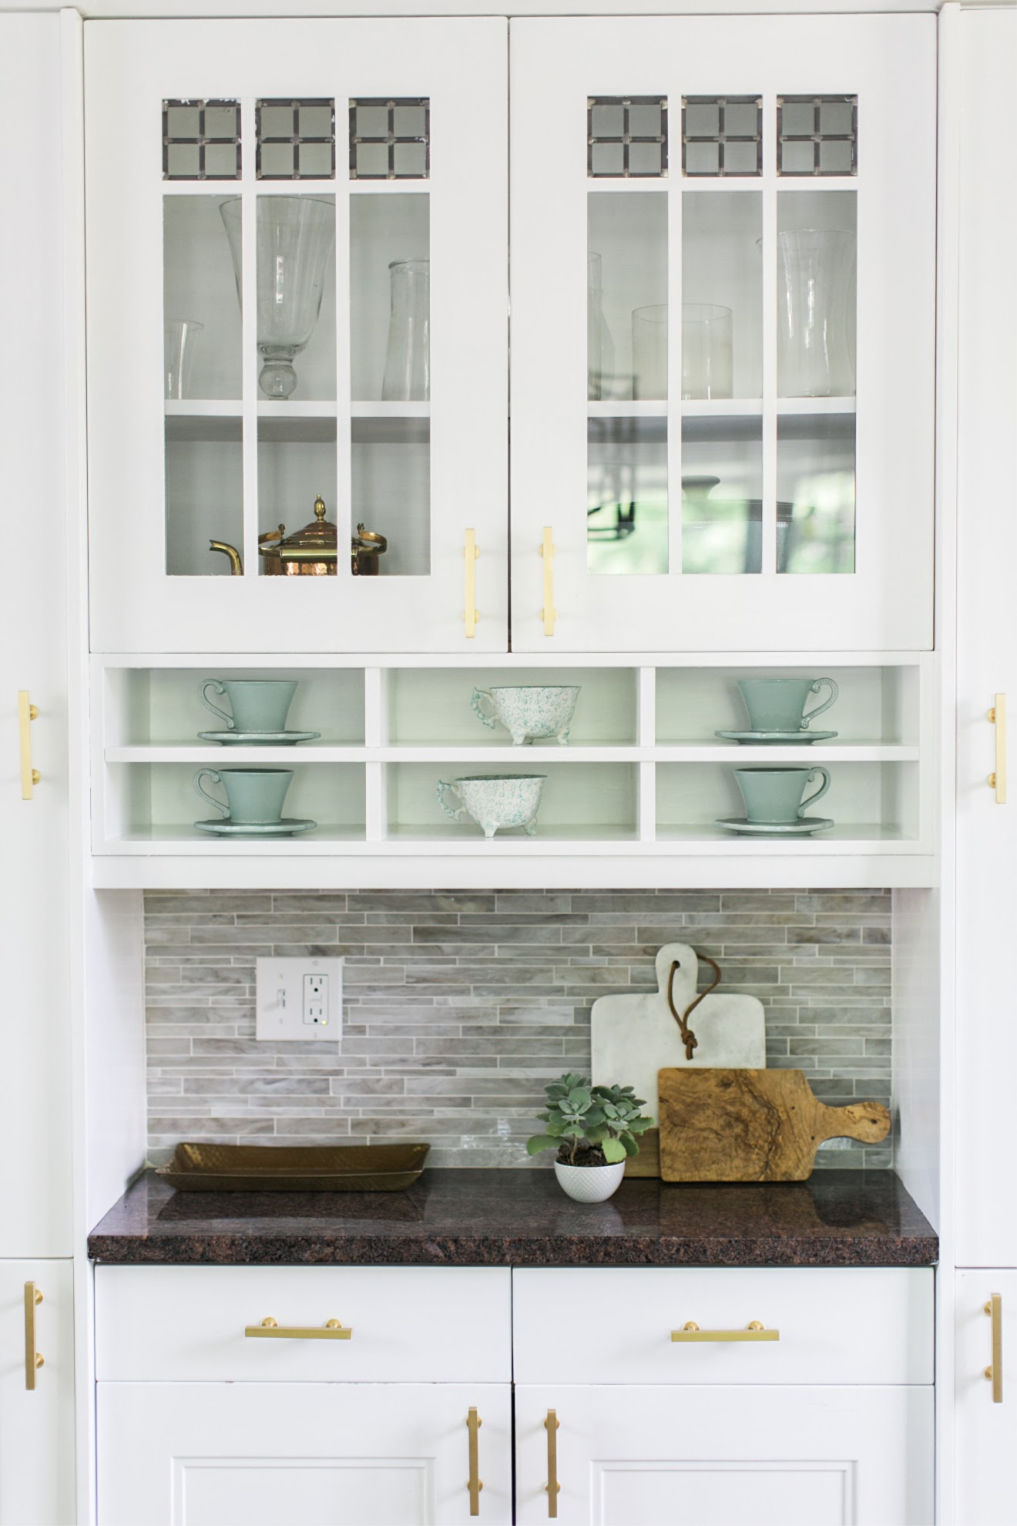 Love this built in hutch to store kitchen essentials kellyelko.com #kitchen #kitchenstorage #kitchencabinet #whitekitchen